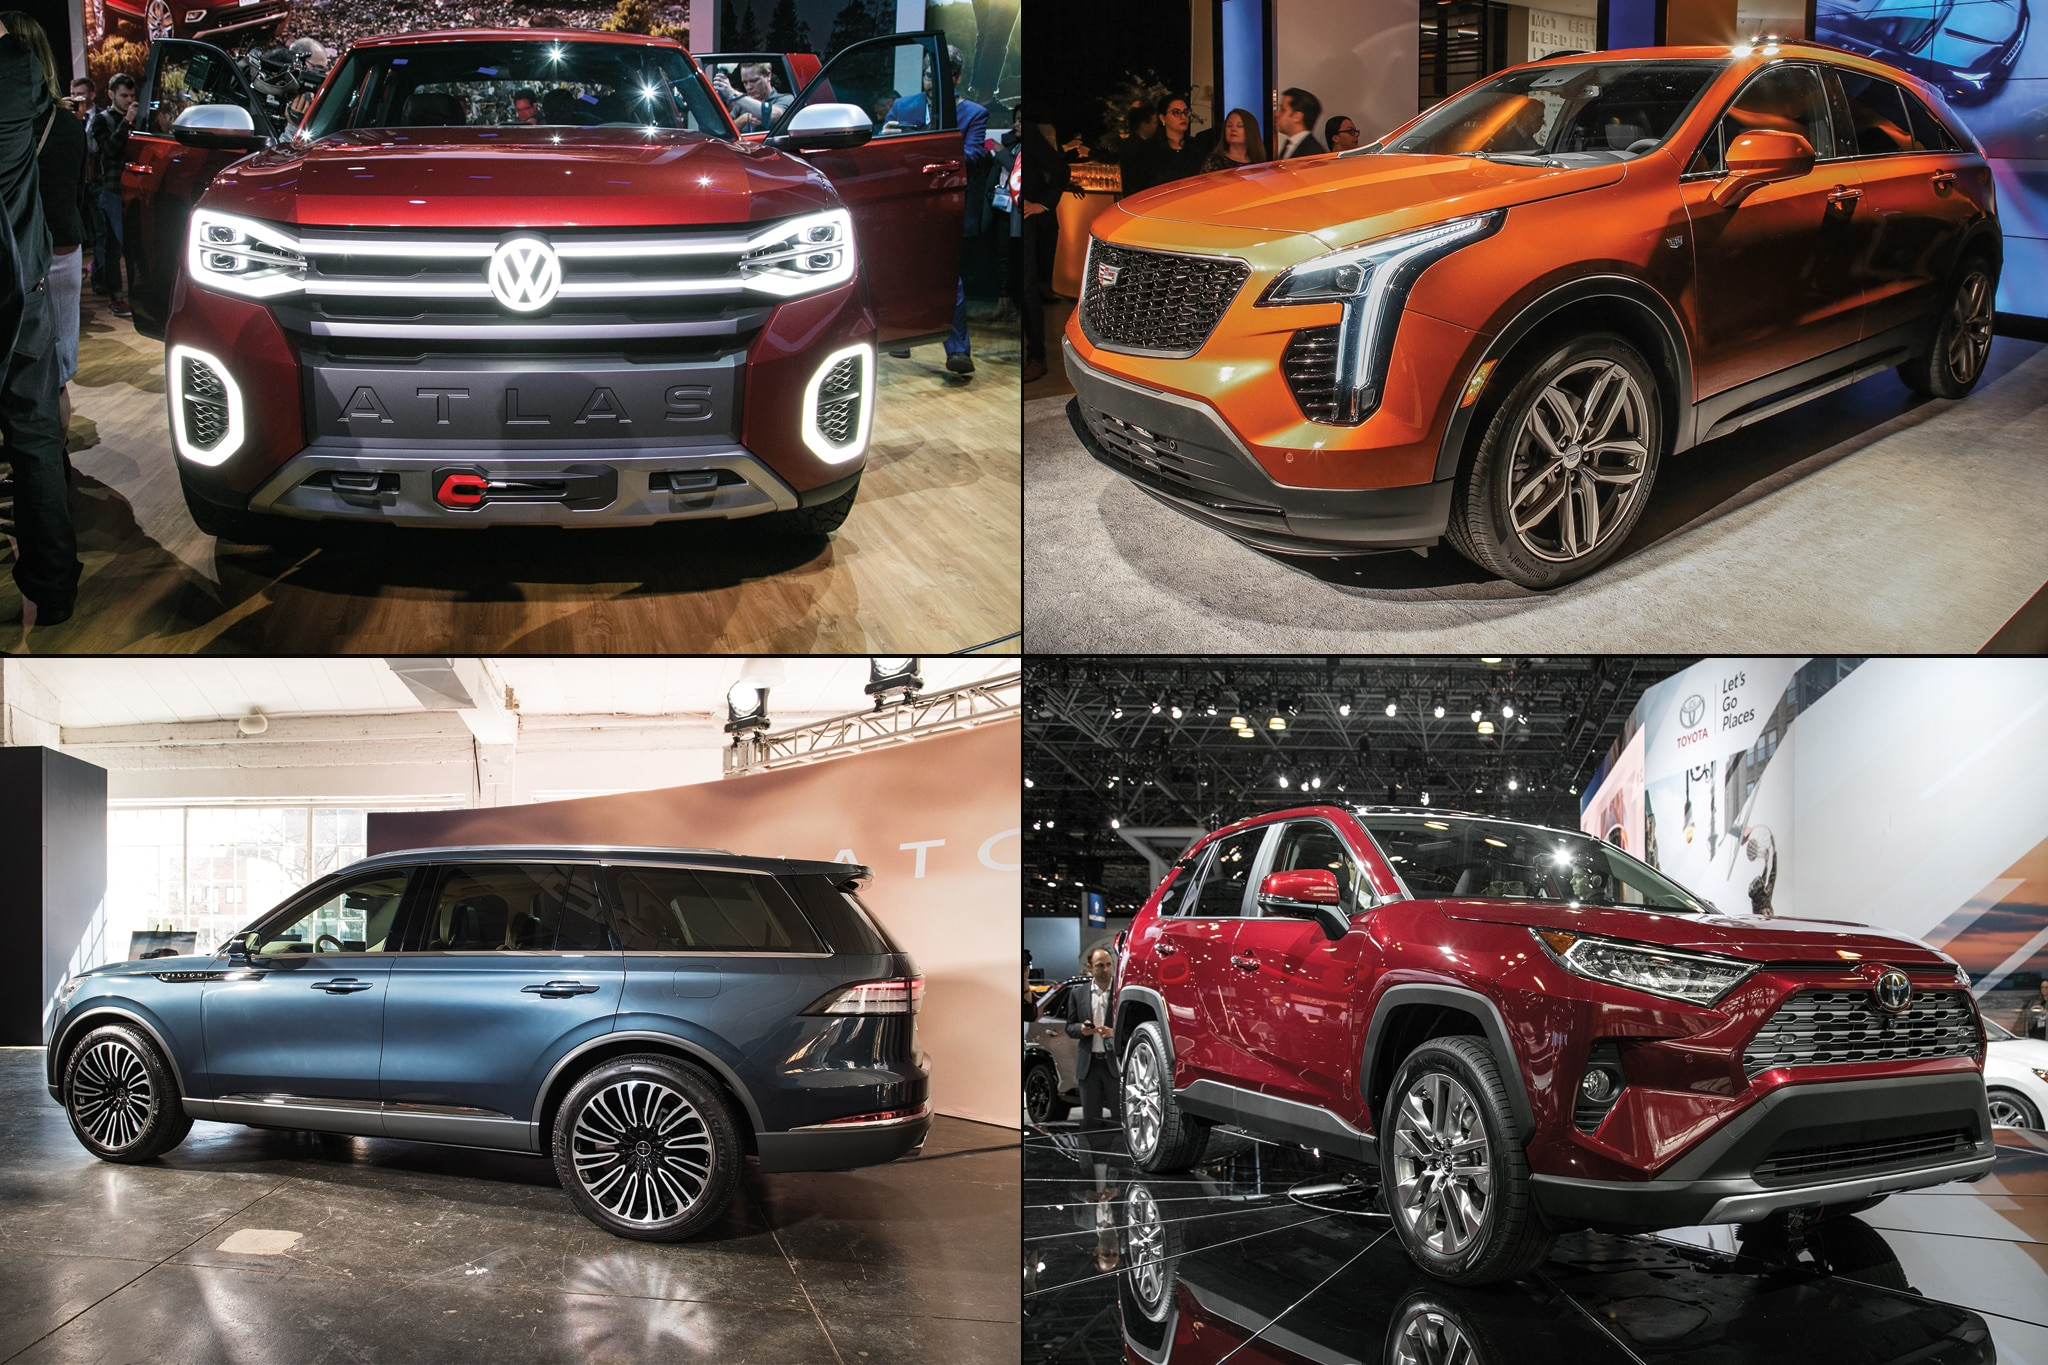 New York Auto Show Hits Misses And Revelations Automobile - Car show nyc 2018